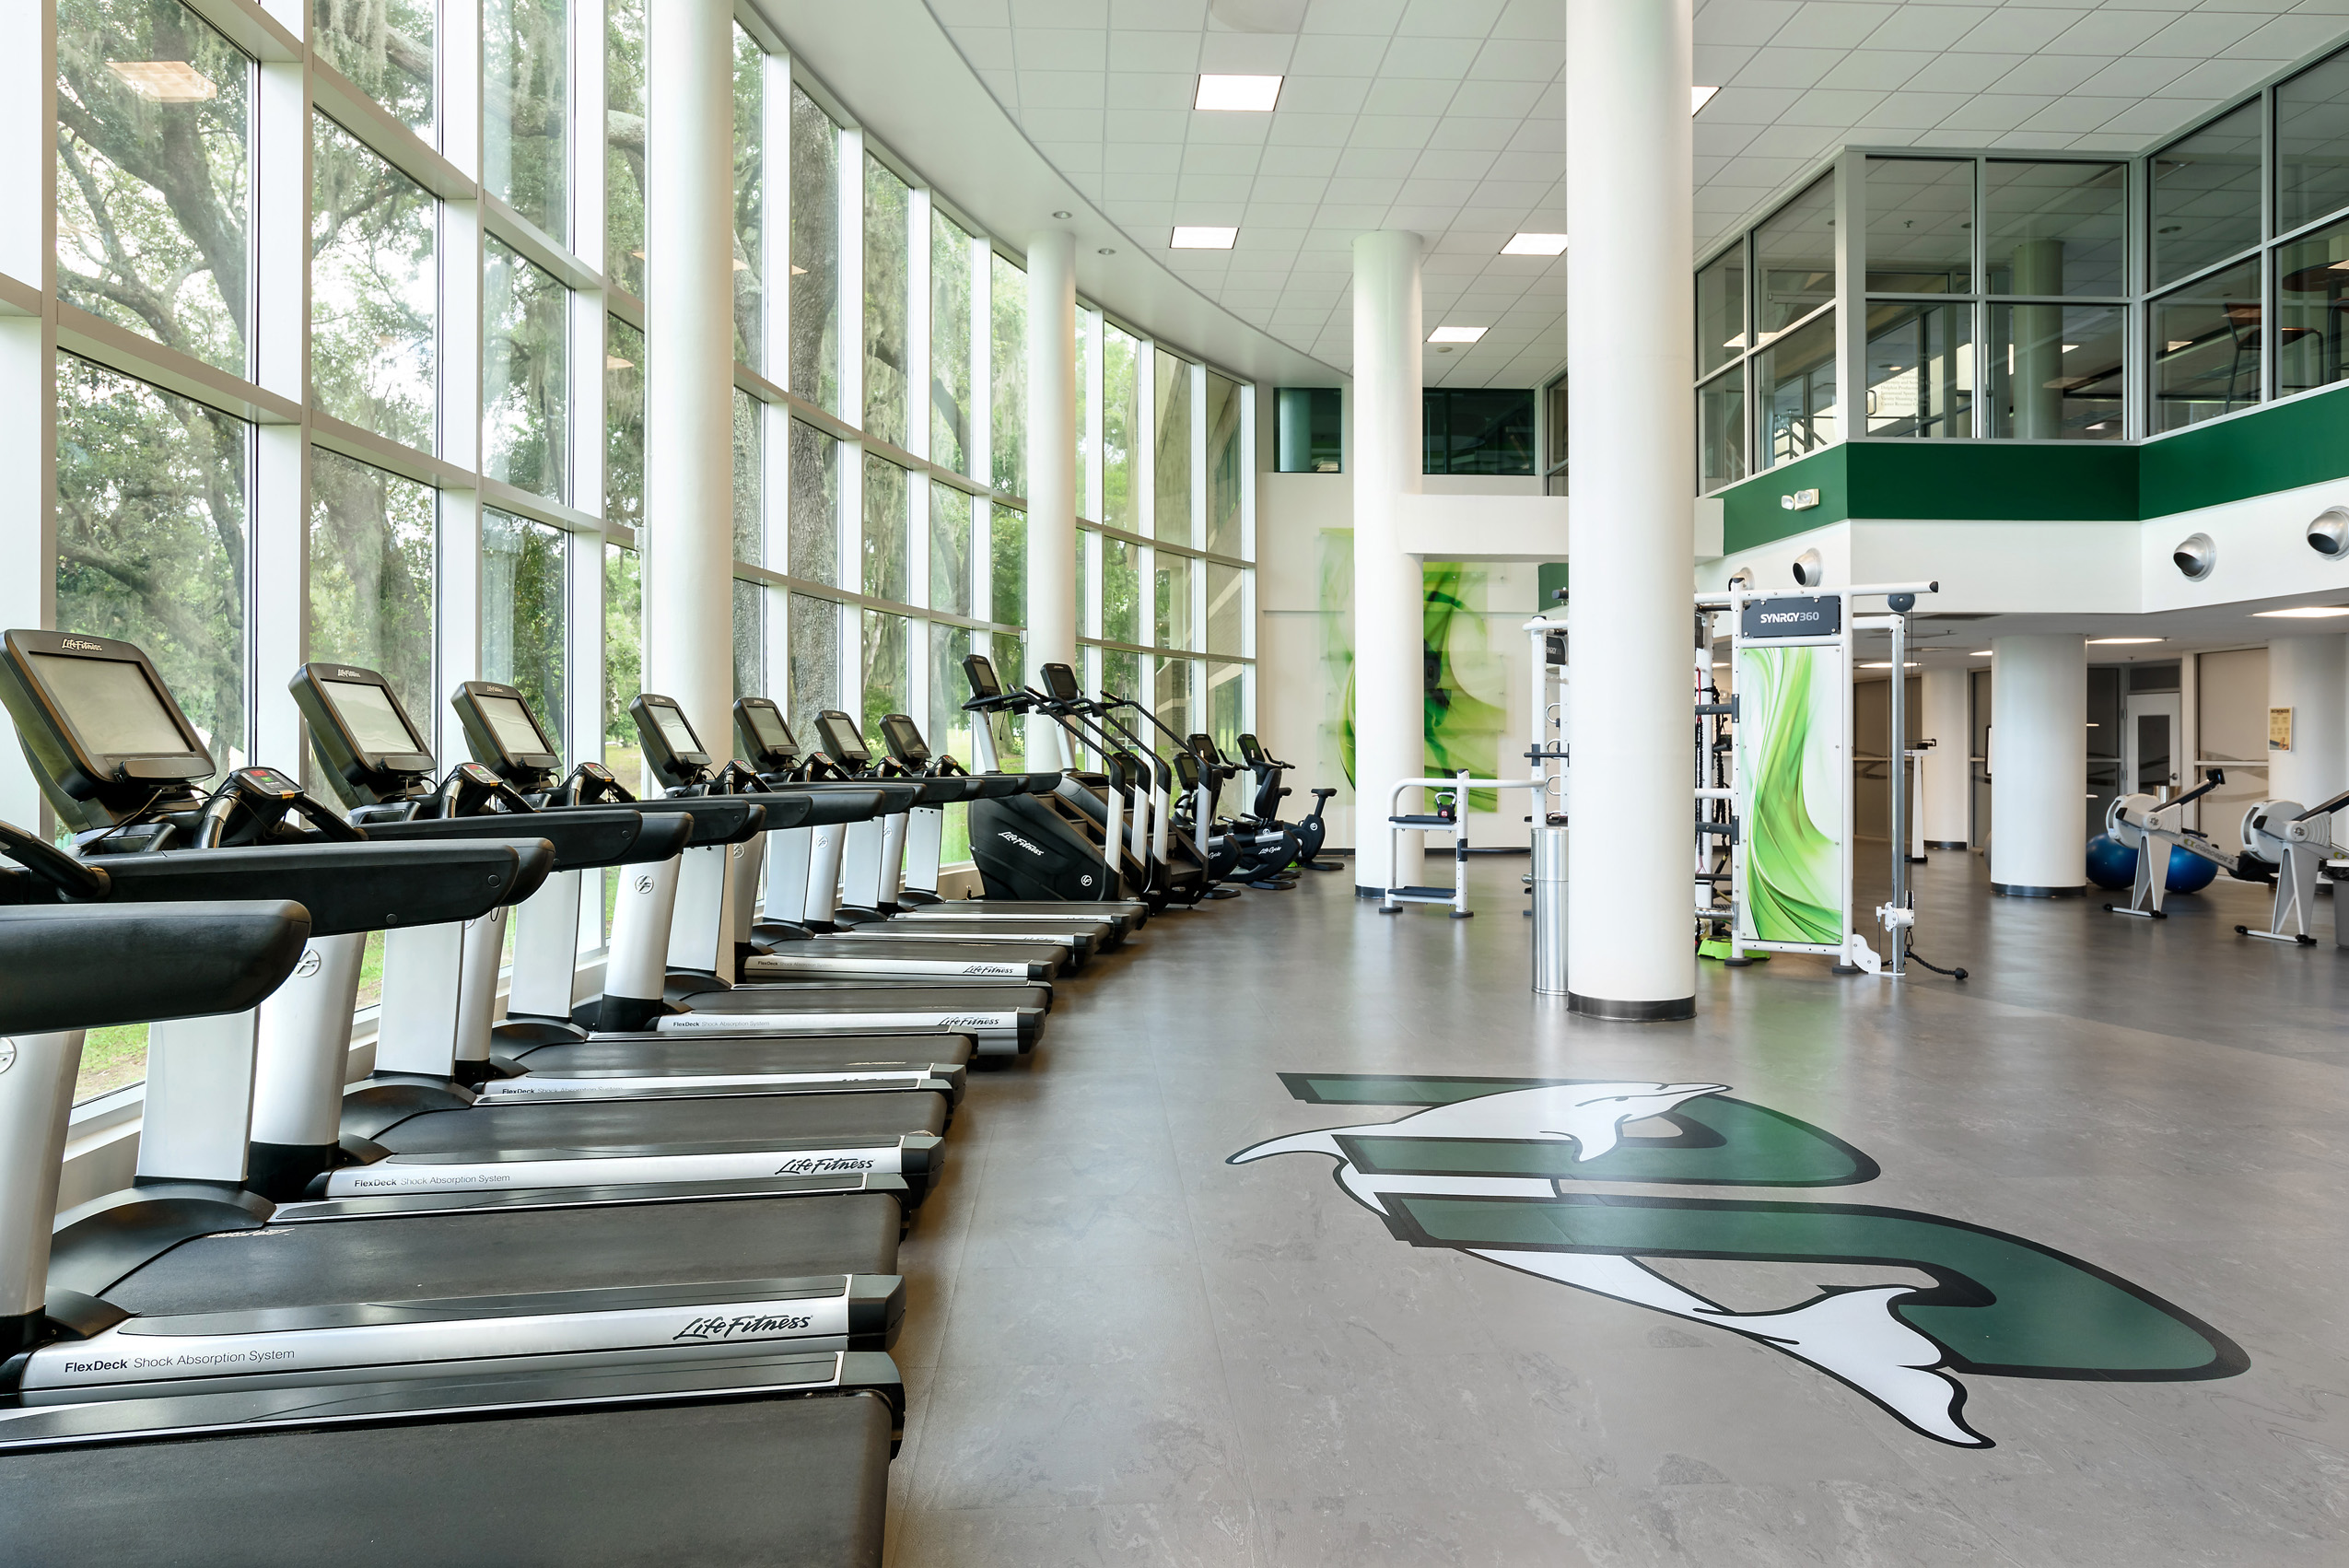 Jacksonville University Fitness Center: Jose​ ​Cardenas​ ​&​ ​John​ ​Perez​ ​-​ ​HOTA​ ​Design​ ​Studio